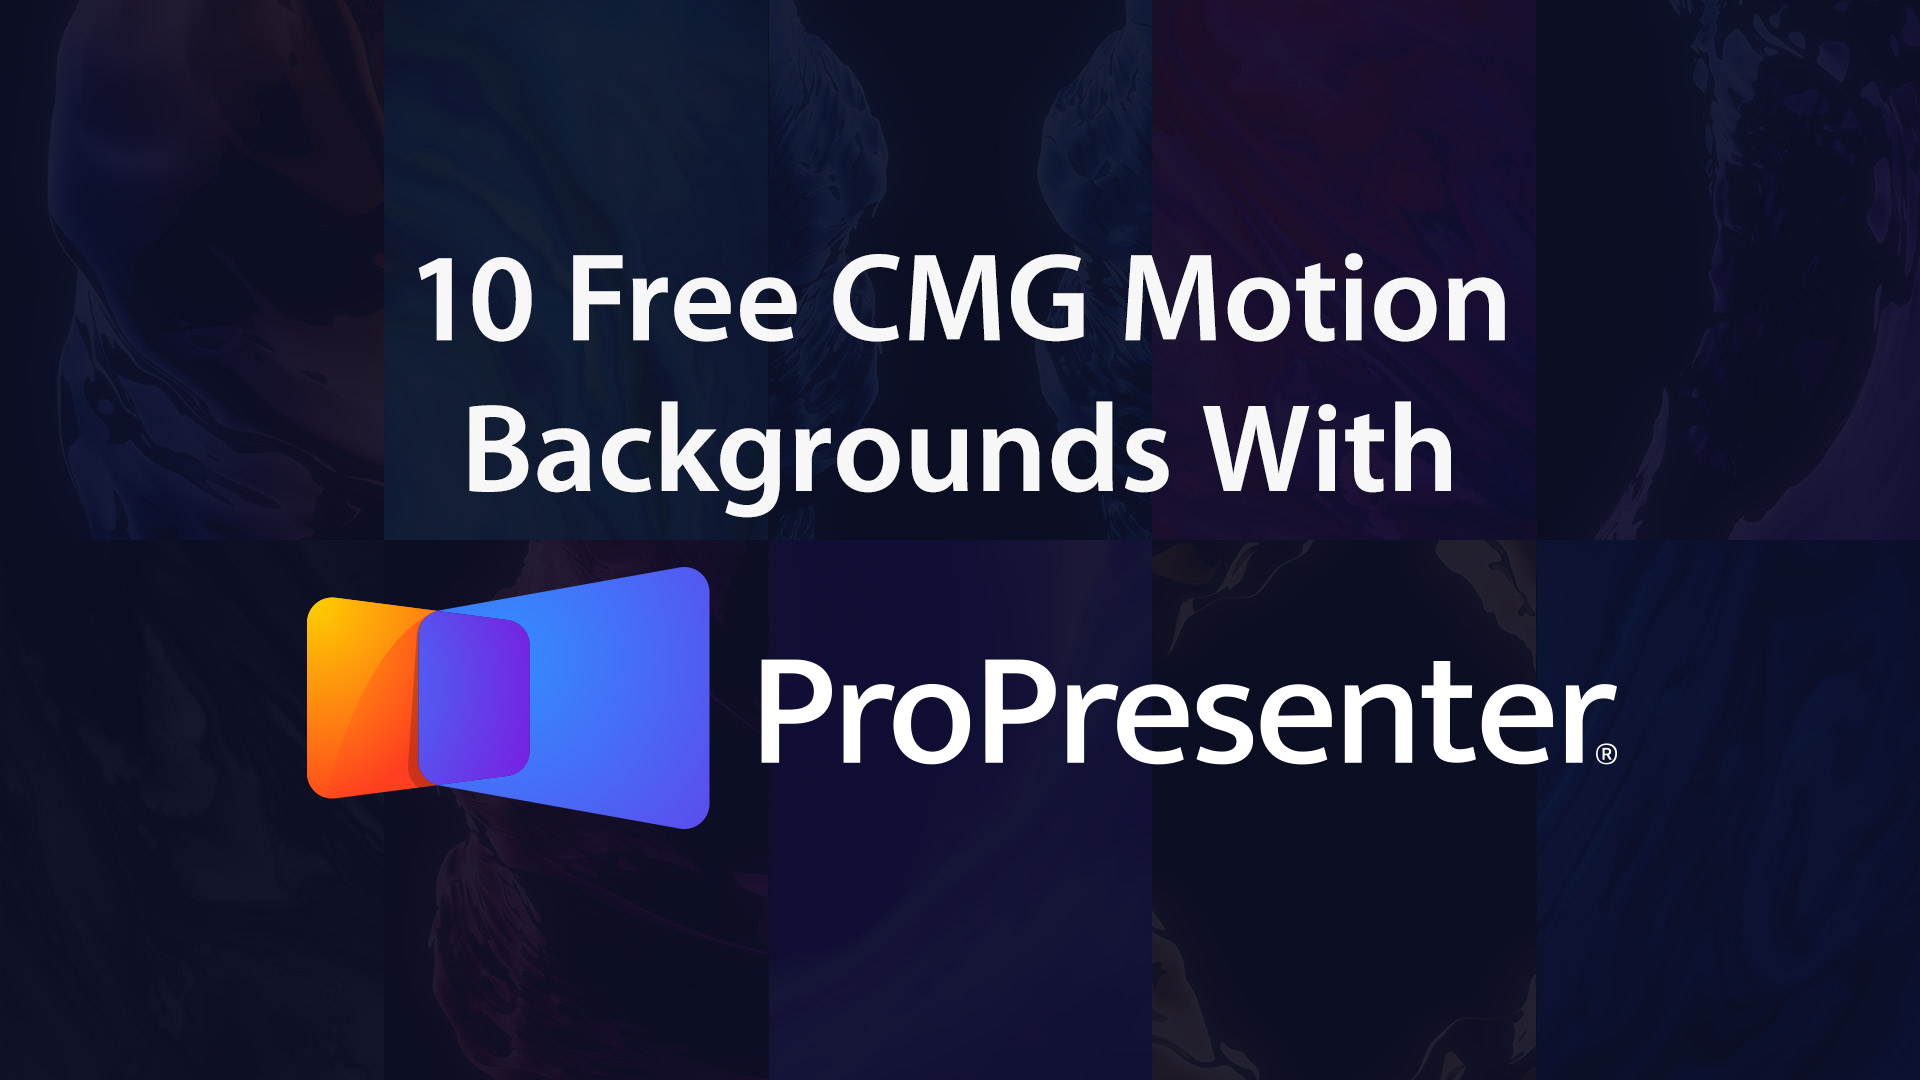 How To Download 10 CMG Motion Backgrounds With ProPresenter 7 1920x1080